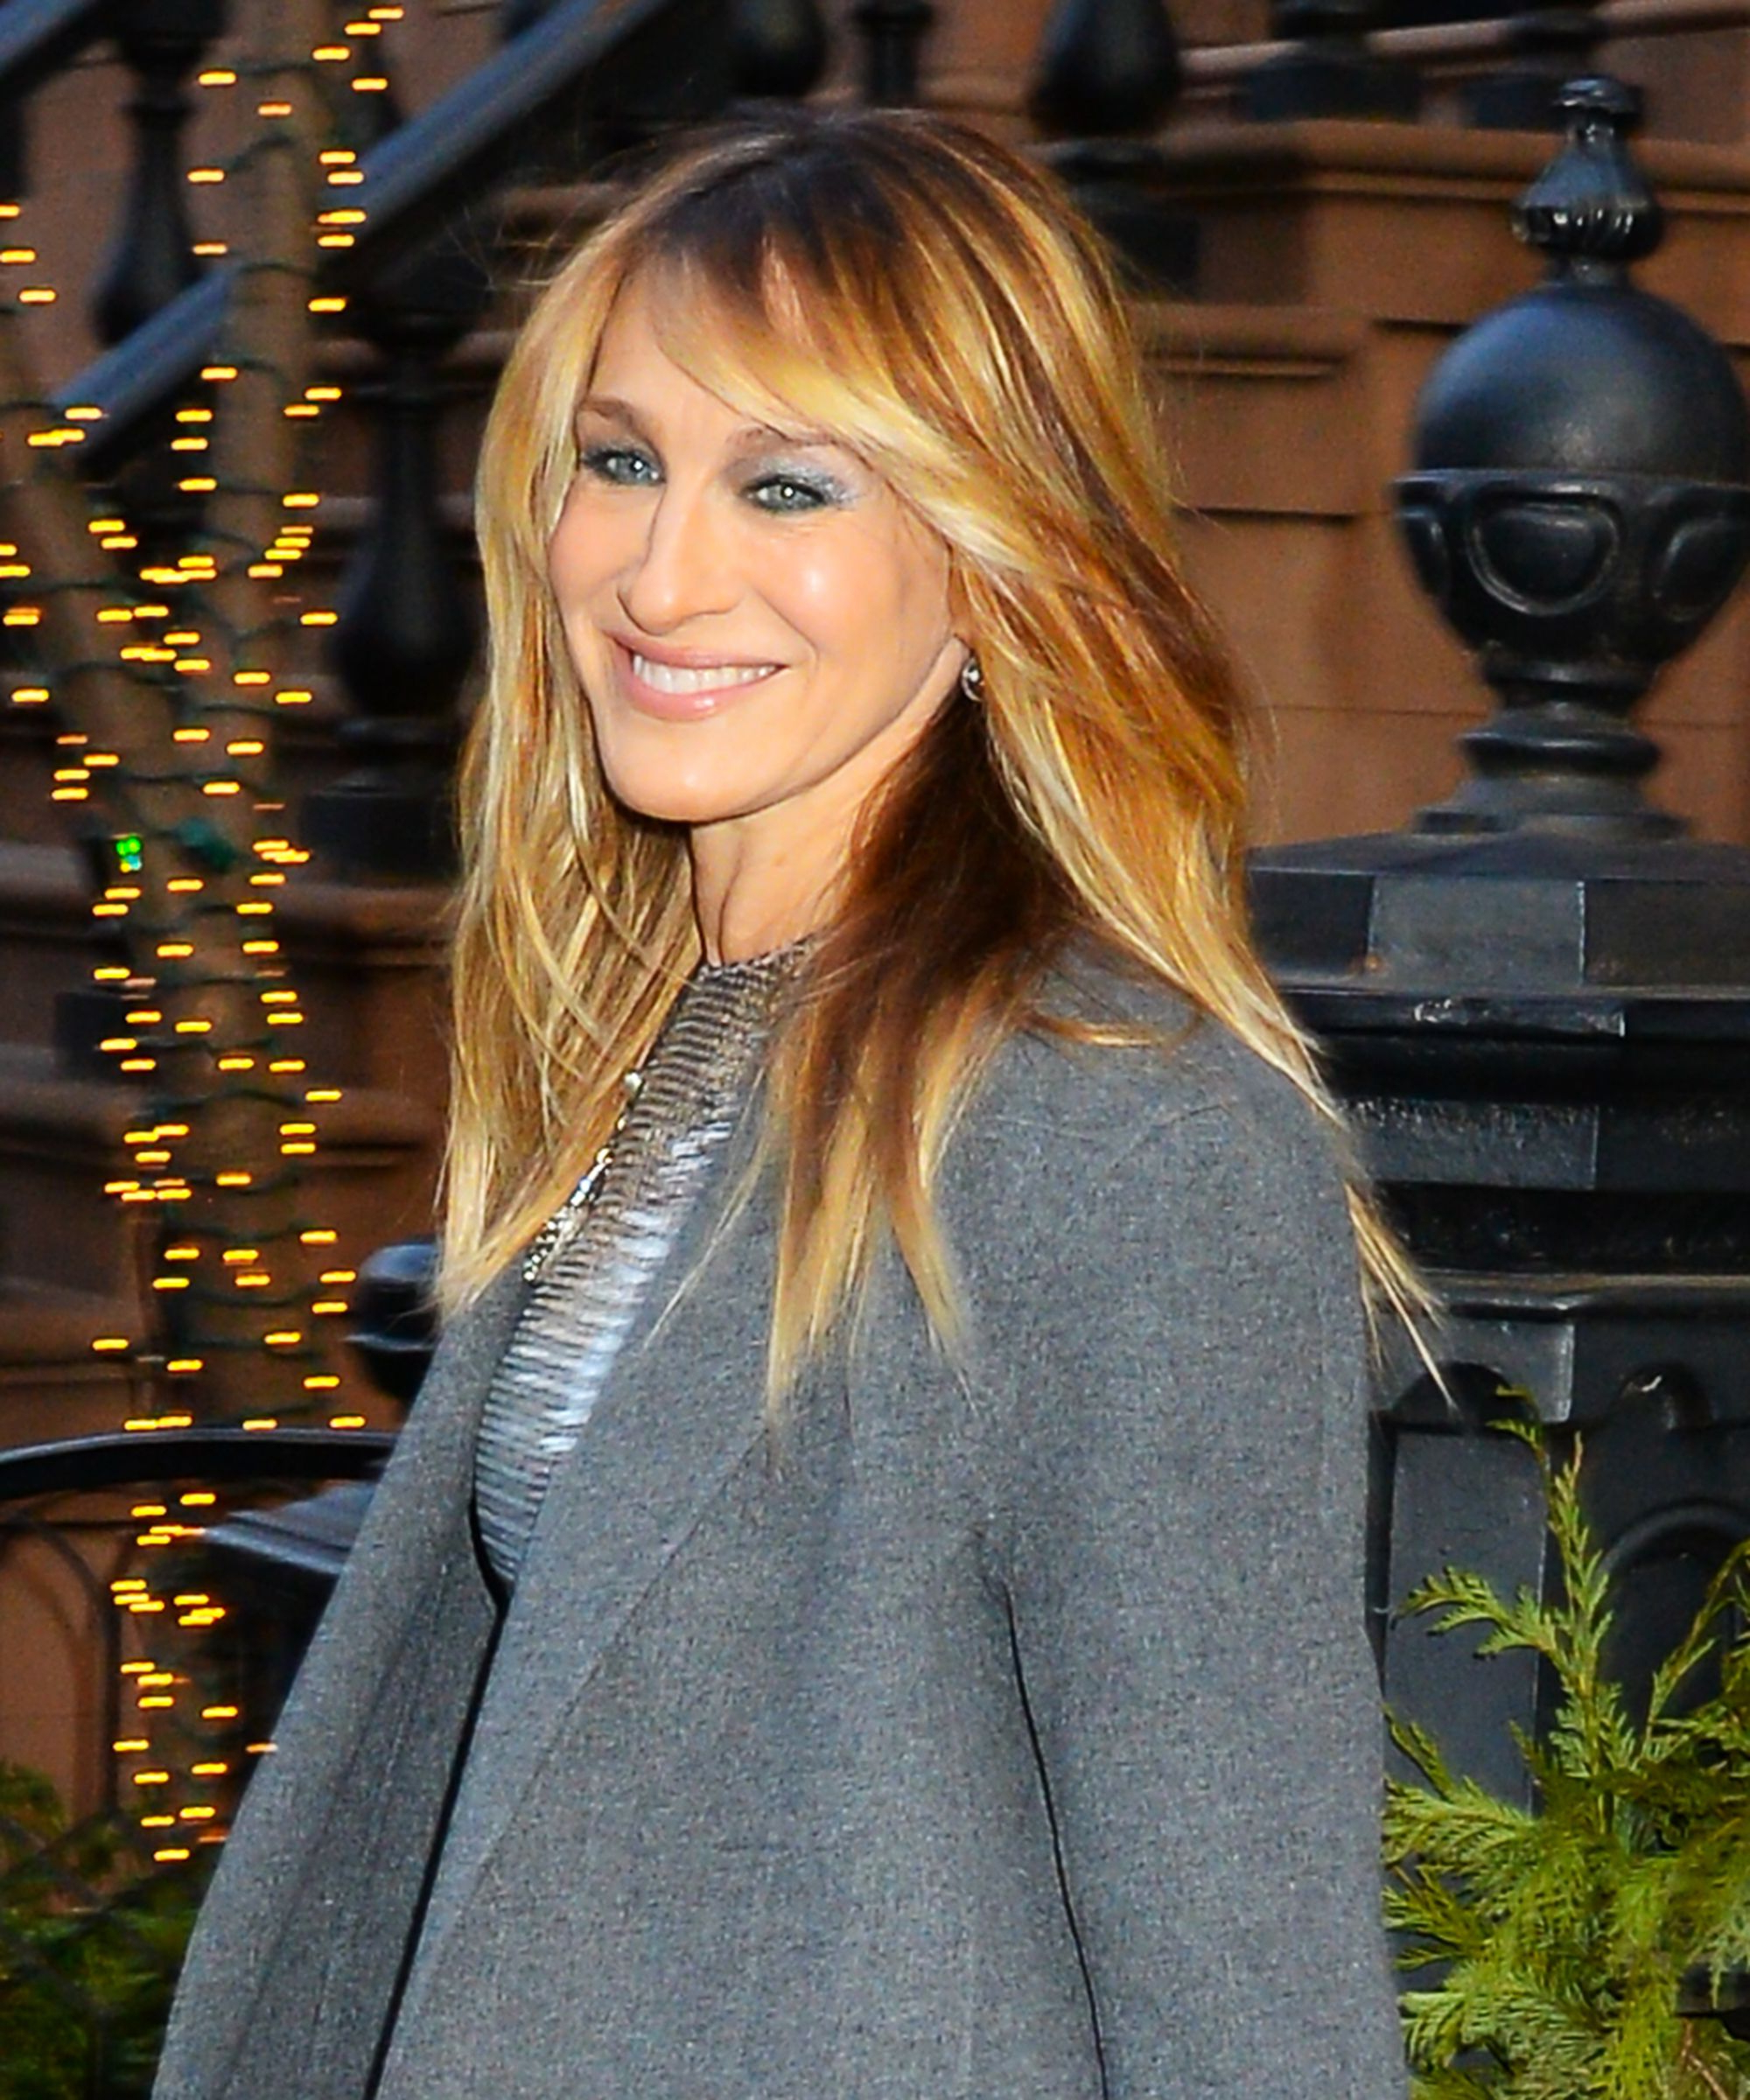 Sarah Jessica Parker Shows Off New Haircut Bangs With Regard To Sarah Jessica Parker Short Hairstyles (View 5 of 25)